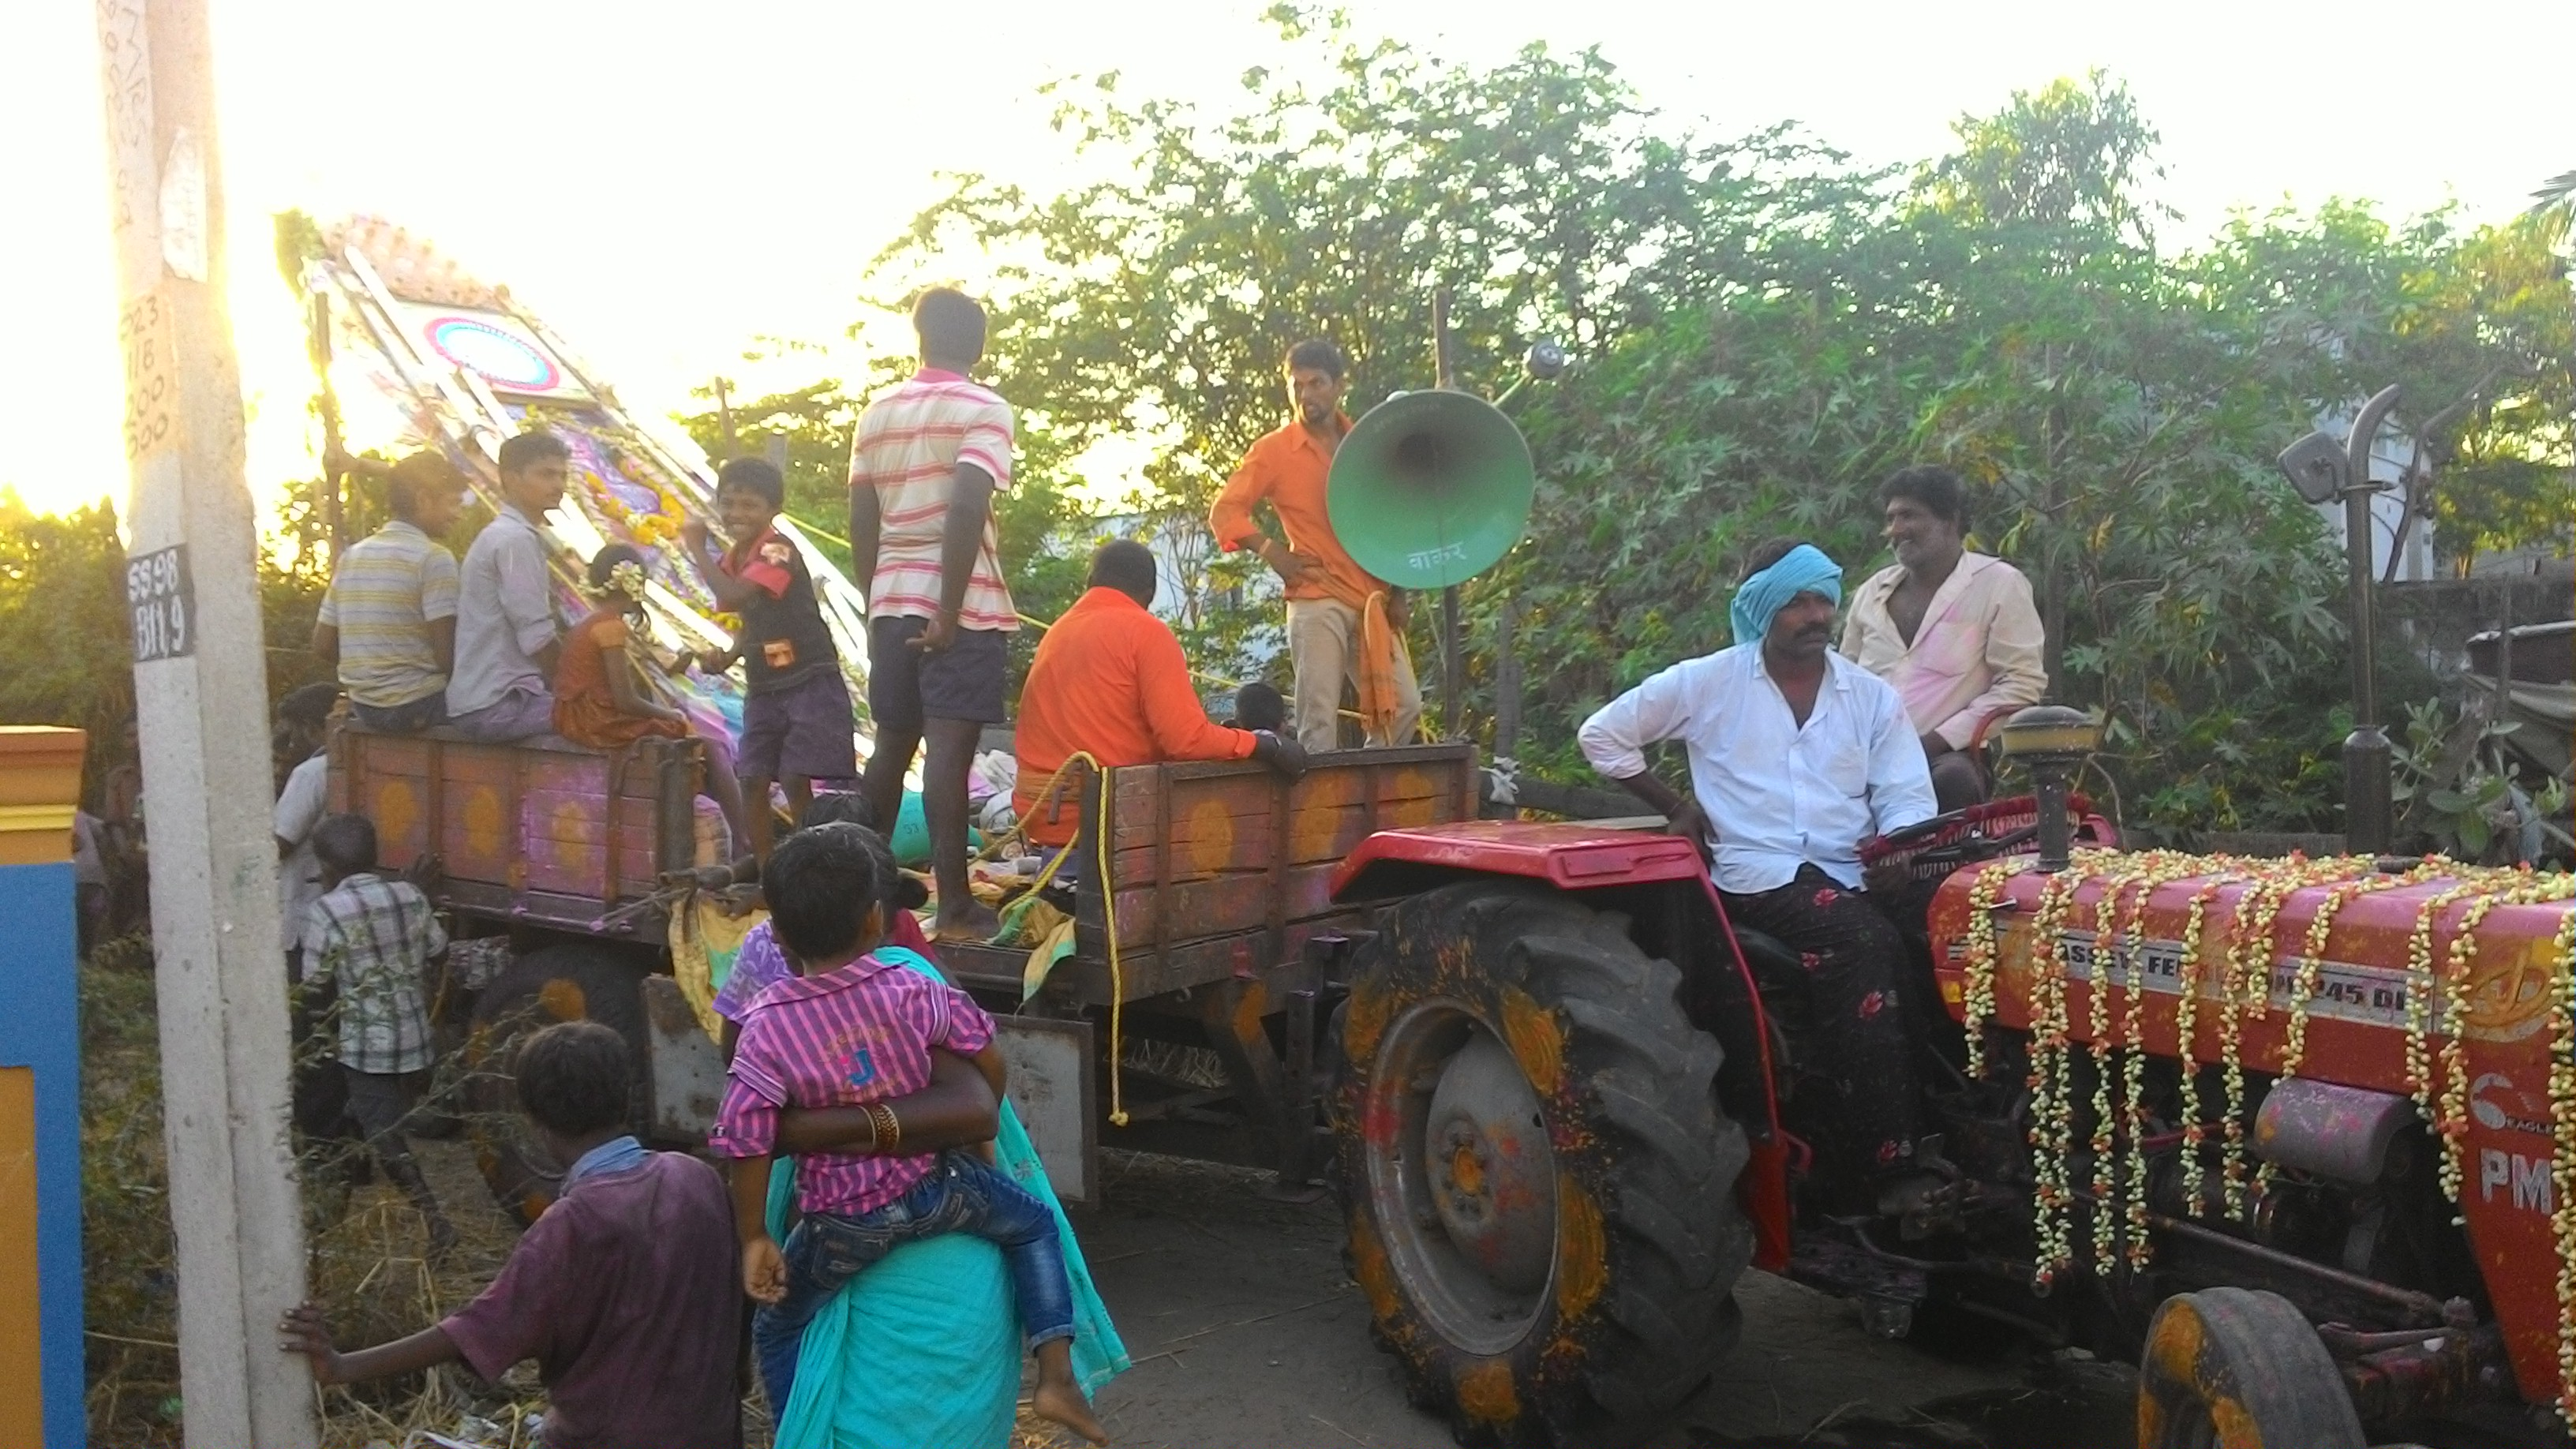 The Prabha being taken on a tractor